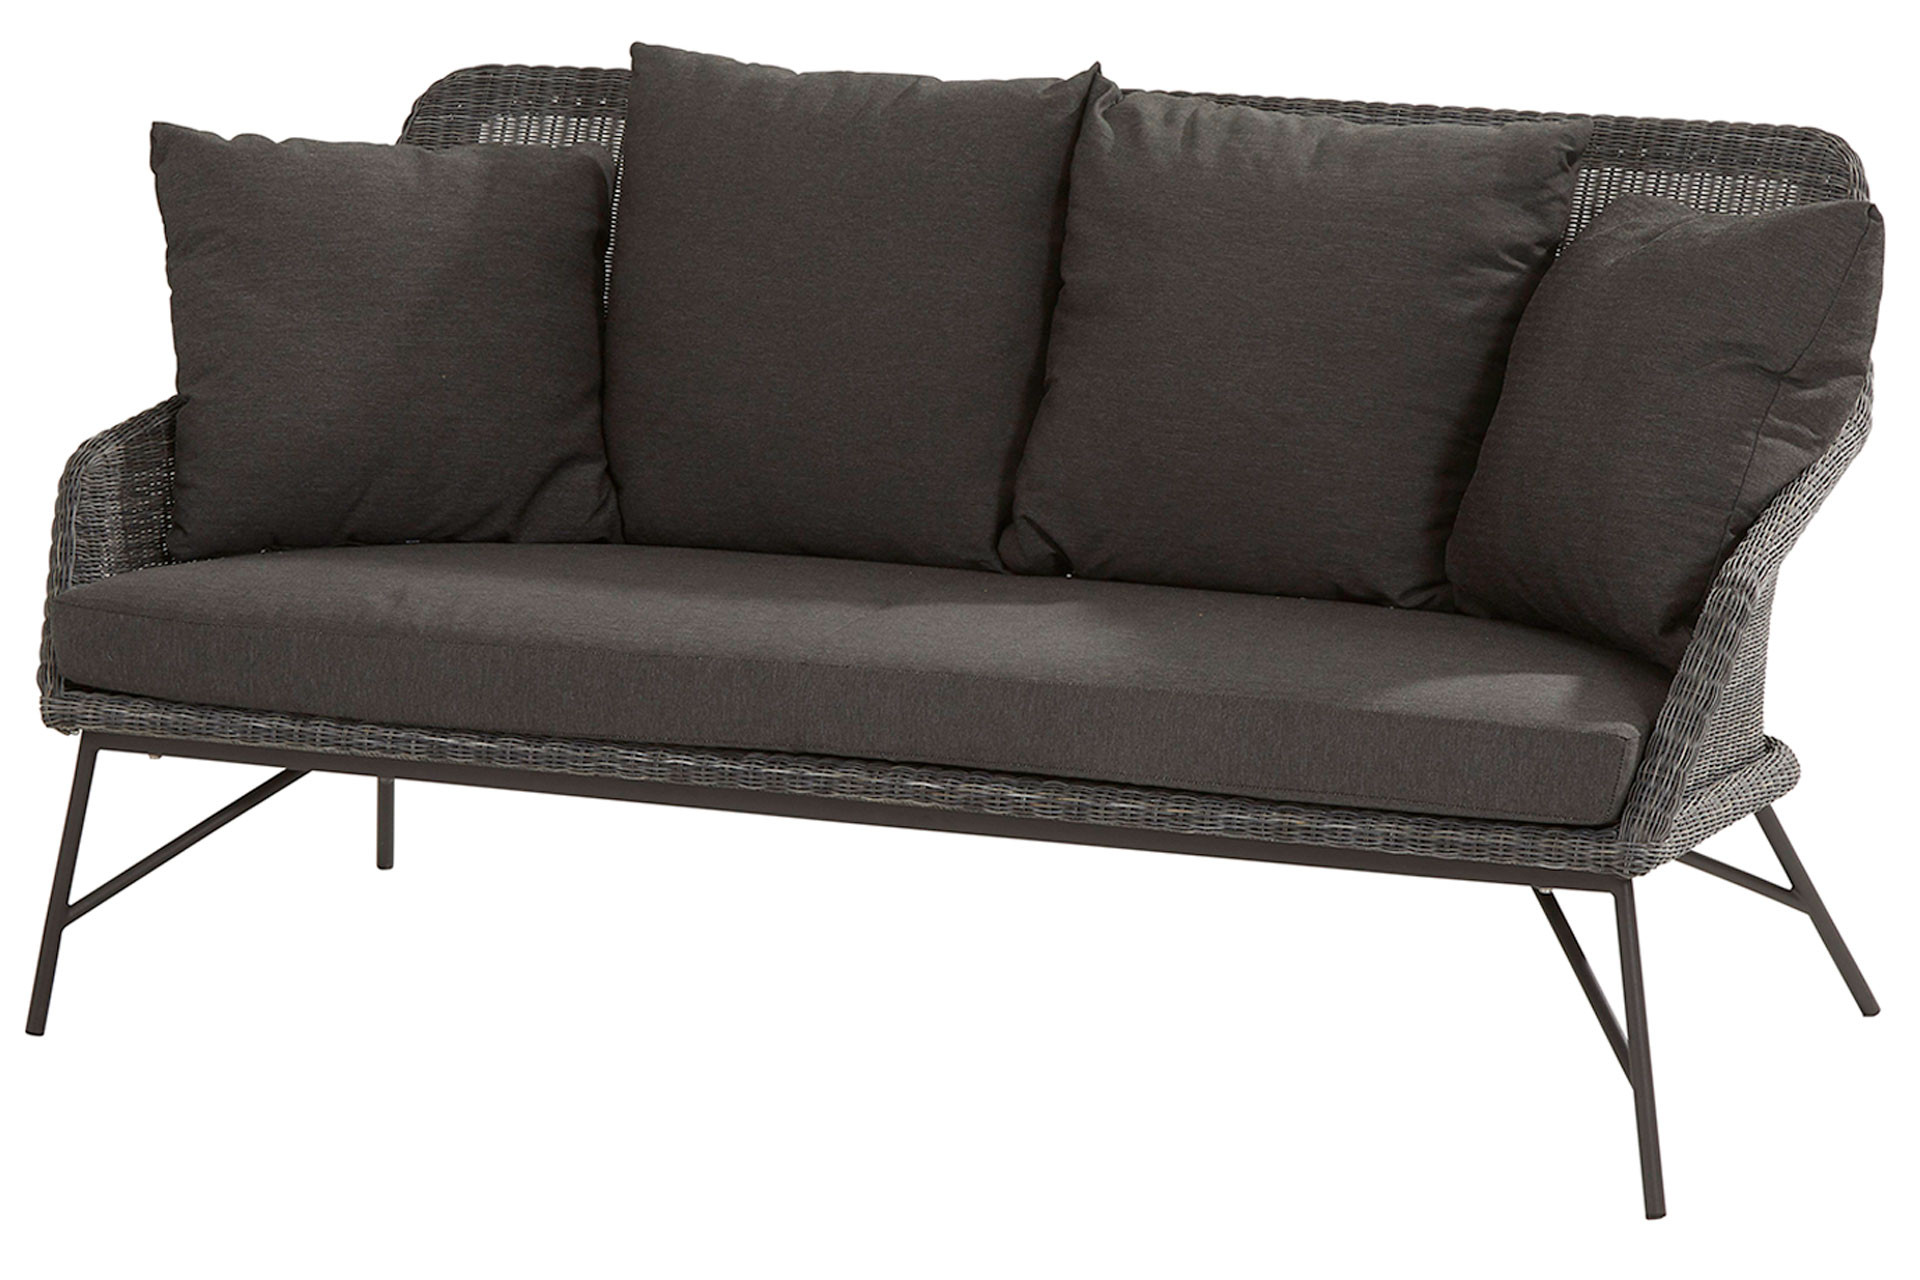 Samoa living bench with 5 cushions Ecoloom Charcoal